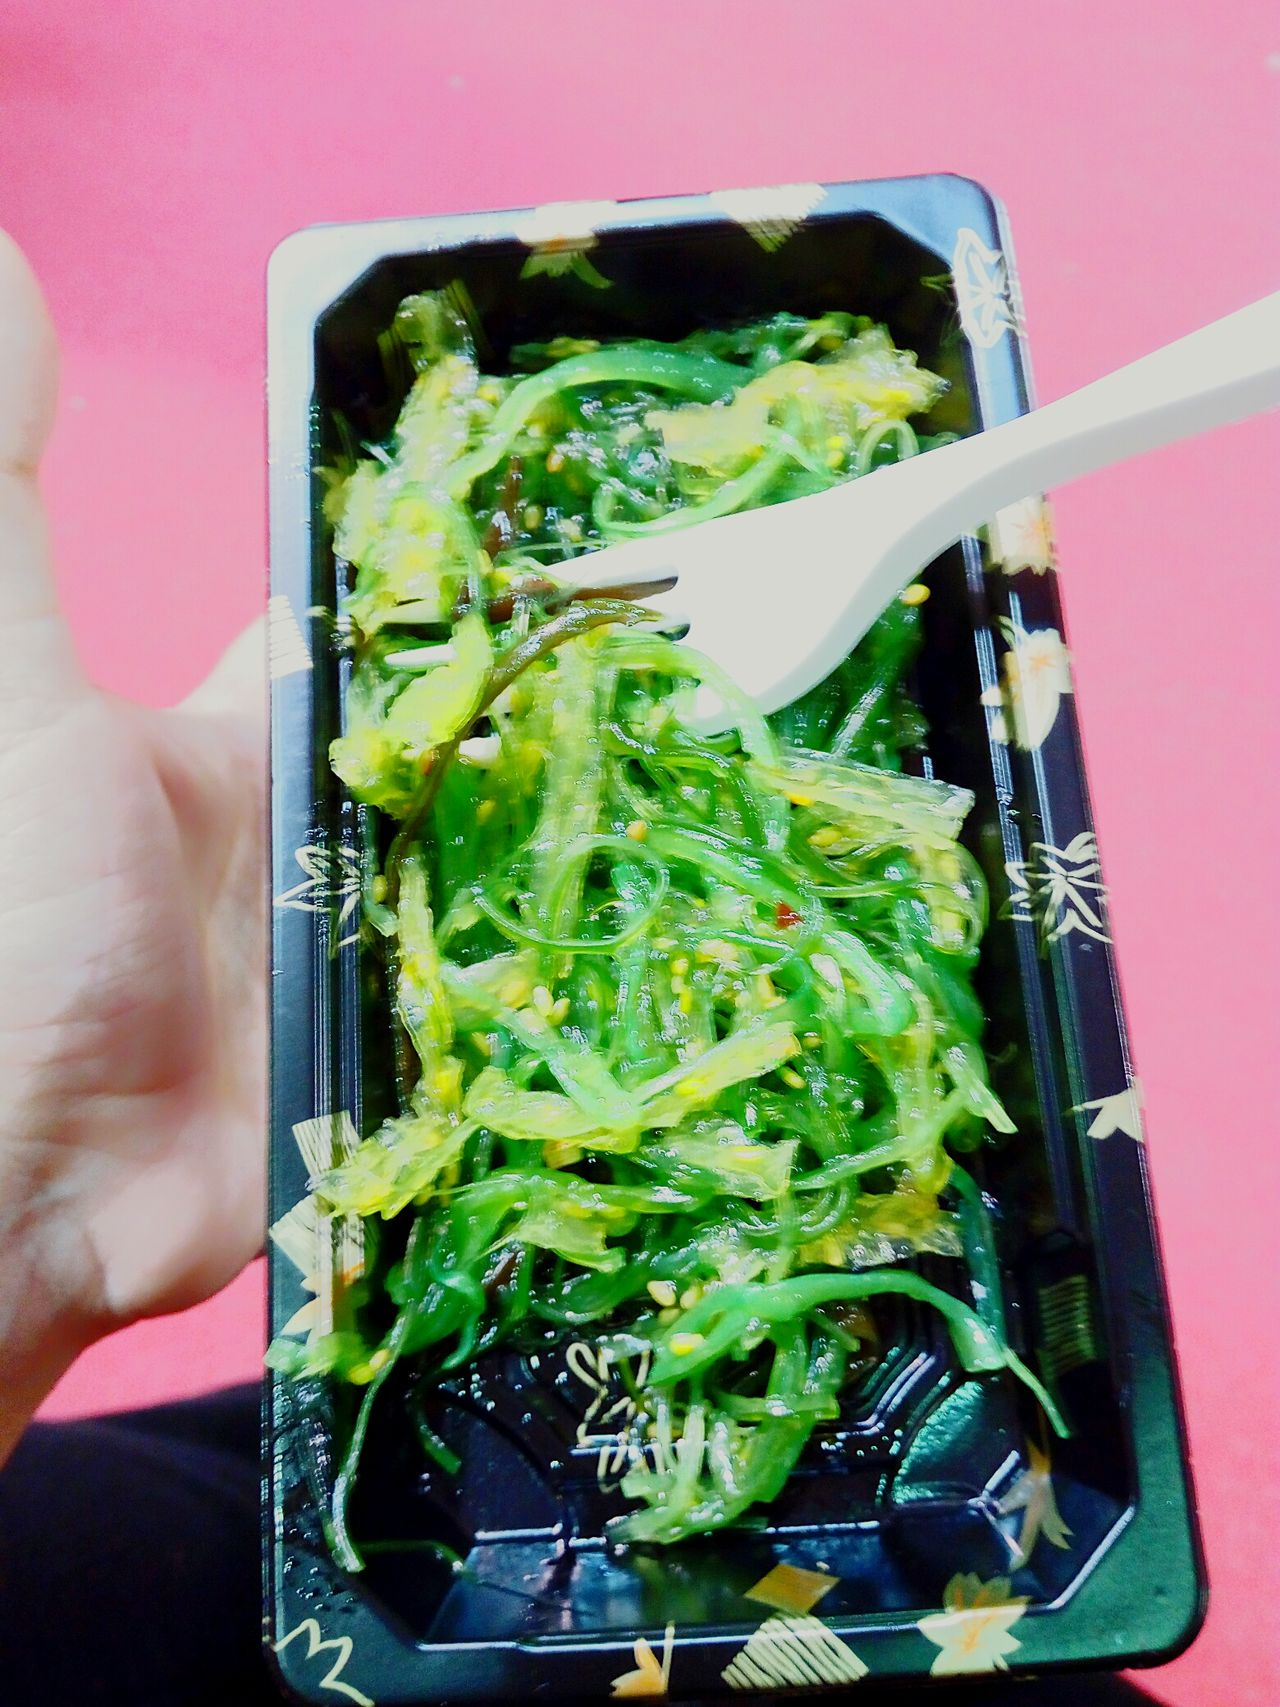 Wakame Wakamesalad Food Food And Drink Freshness Vegetable Japonesefood Serving Size Savory Food Meal Globalization